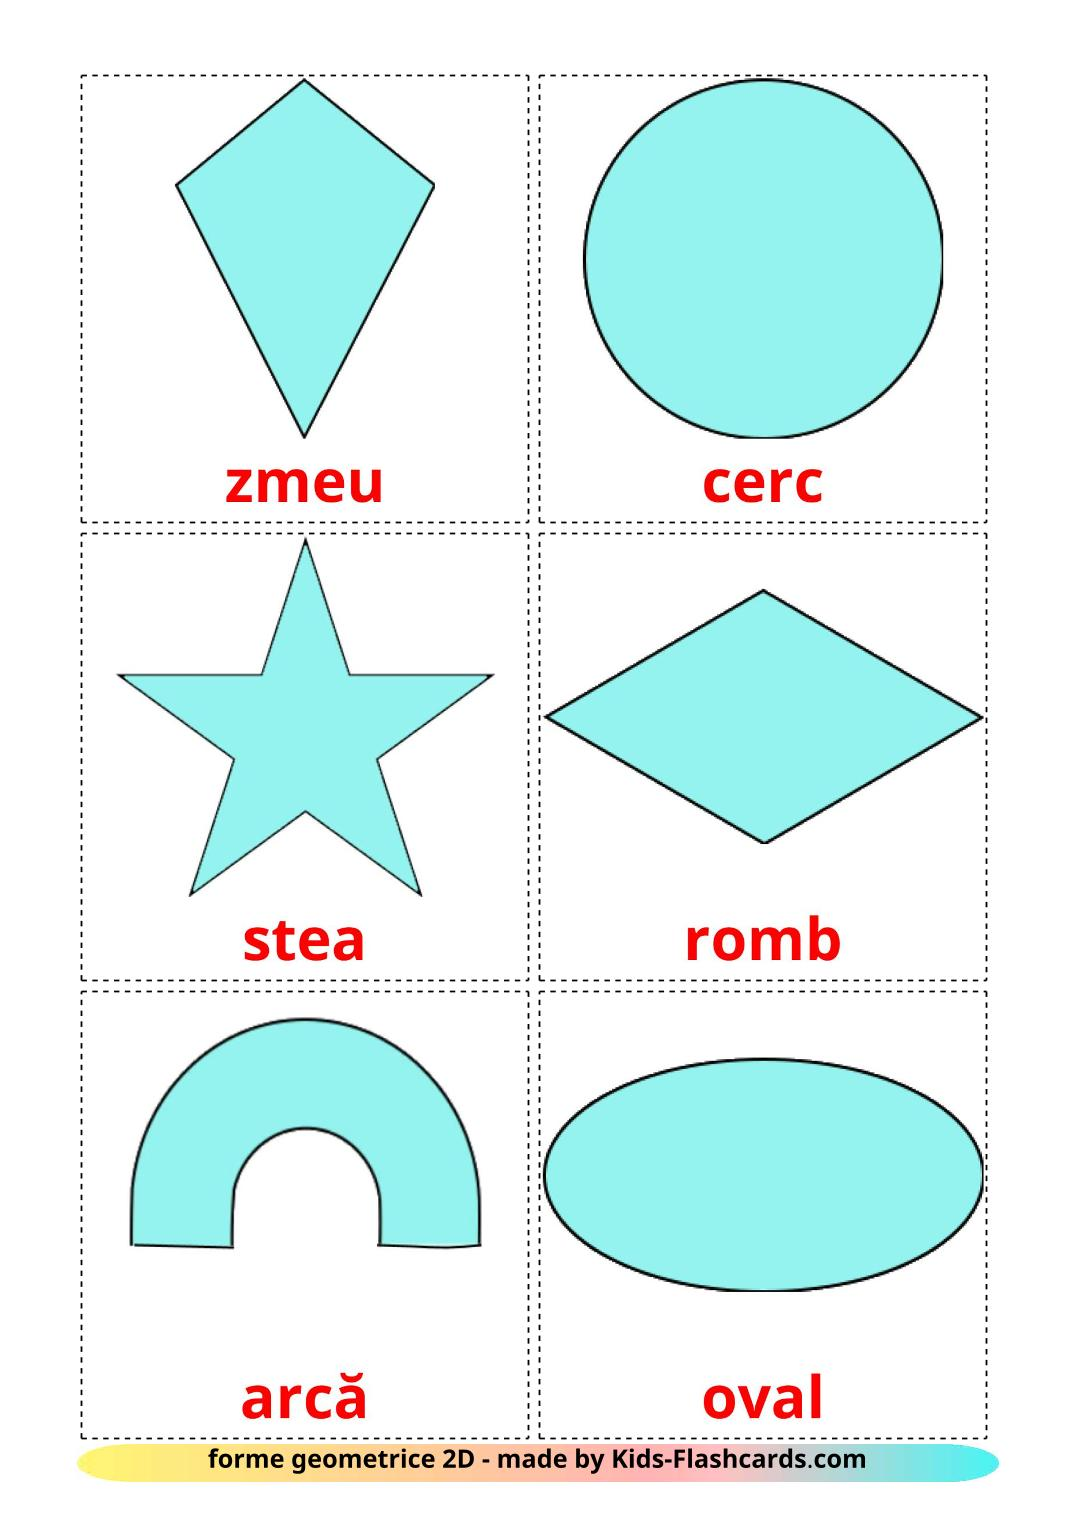 2D Shapes - 35 Free Printable romanian Flashcards